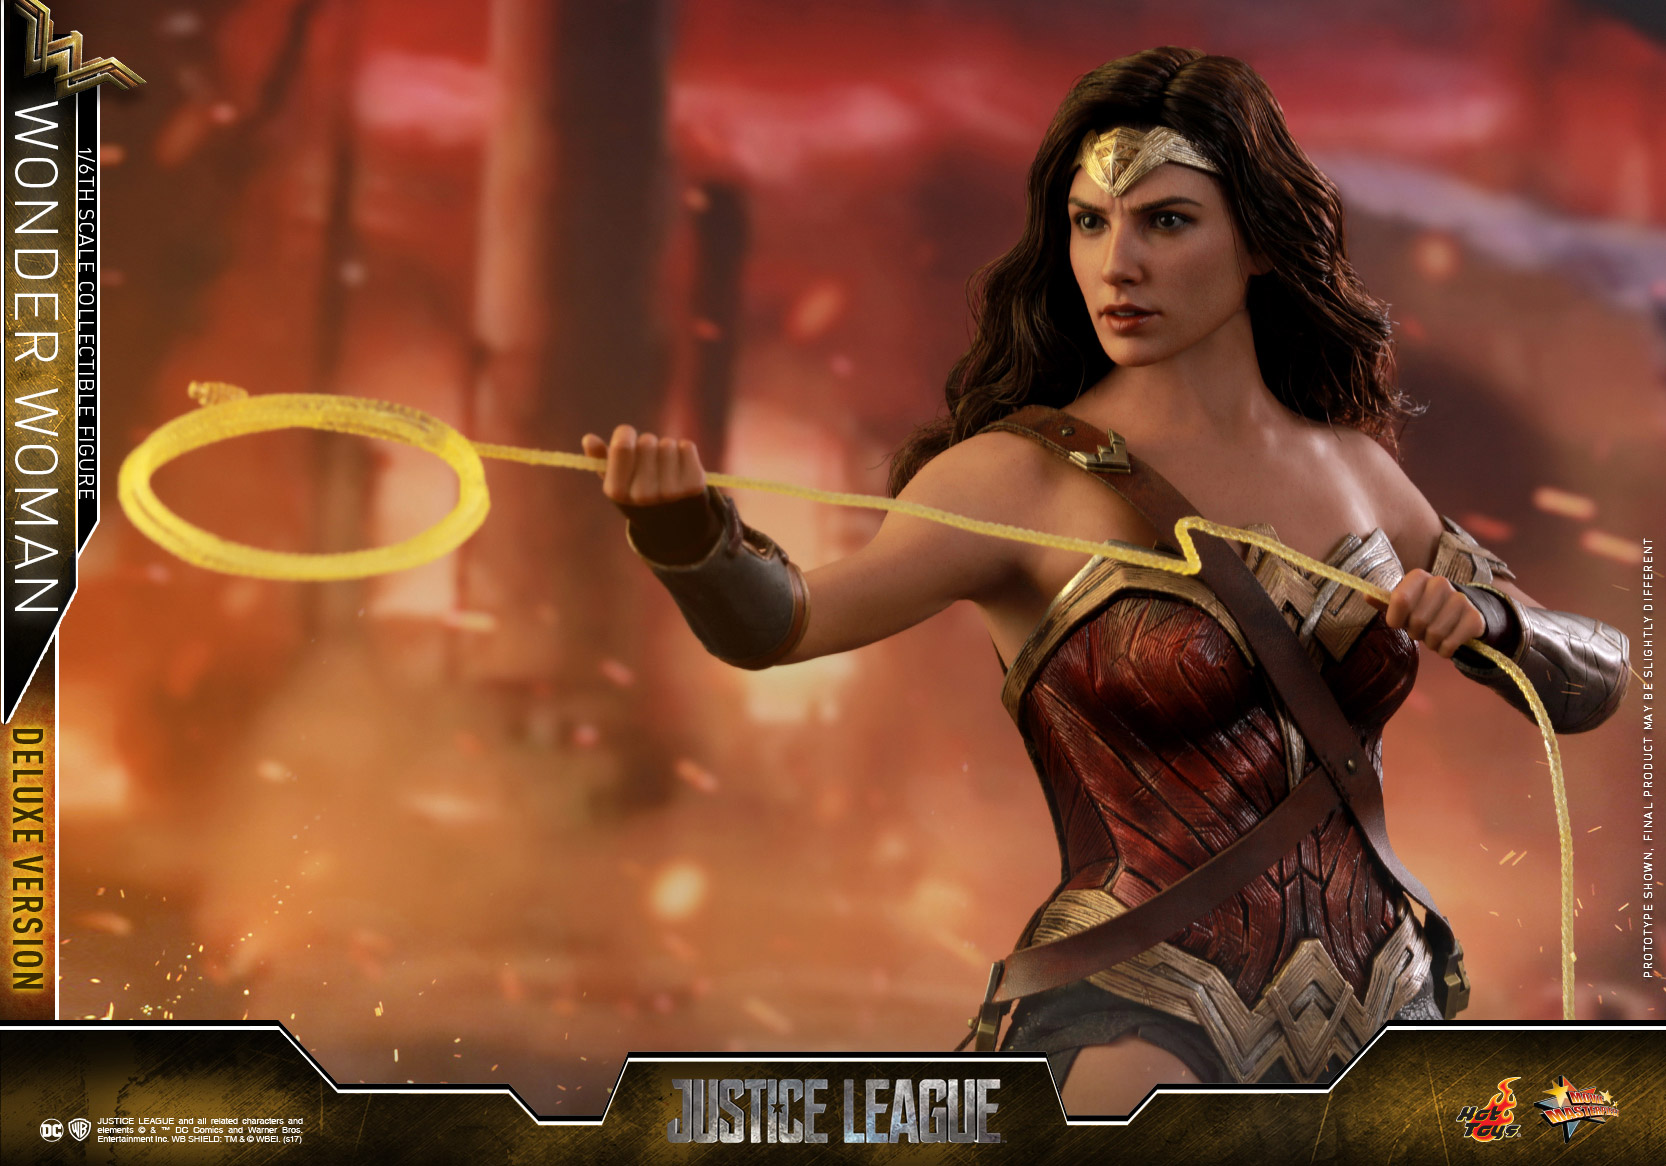 Hot-Toys-Justice-League-Wonder-Woman-collectible-figure-Deluxe_PR-12.jpg